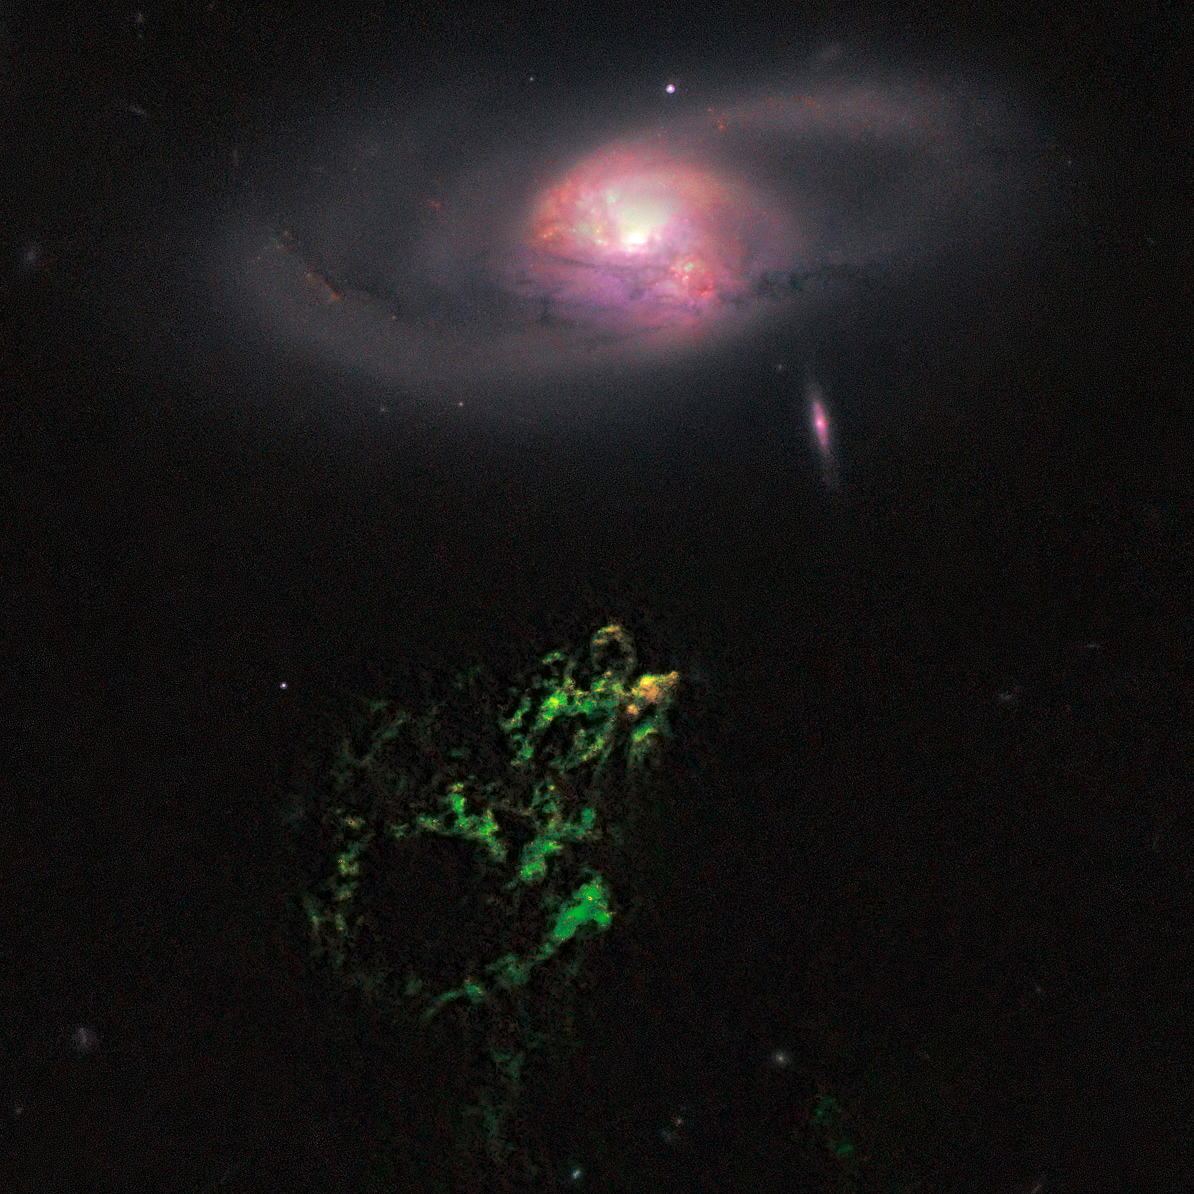 Hanny's Voorwerp imaged by the Hubble